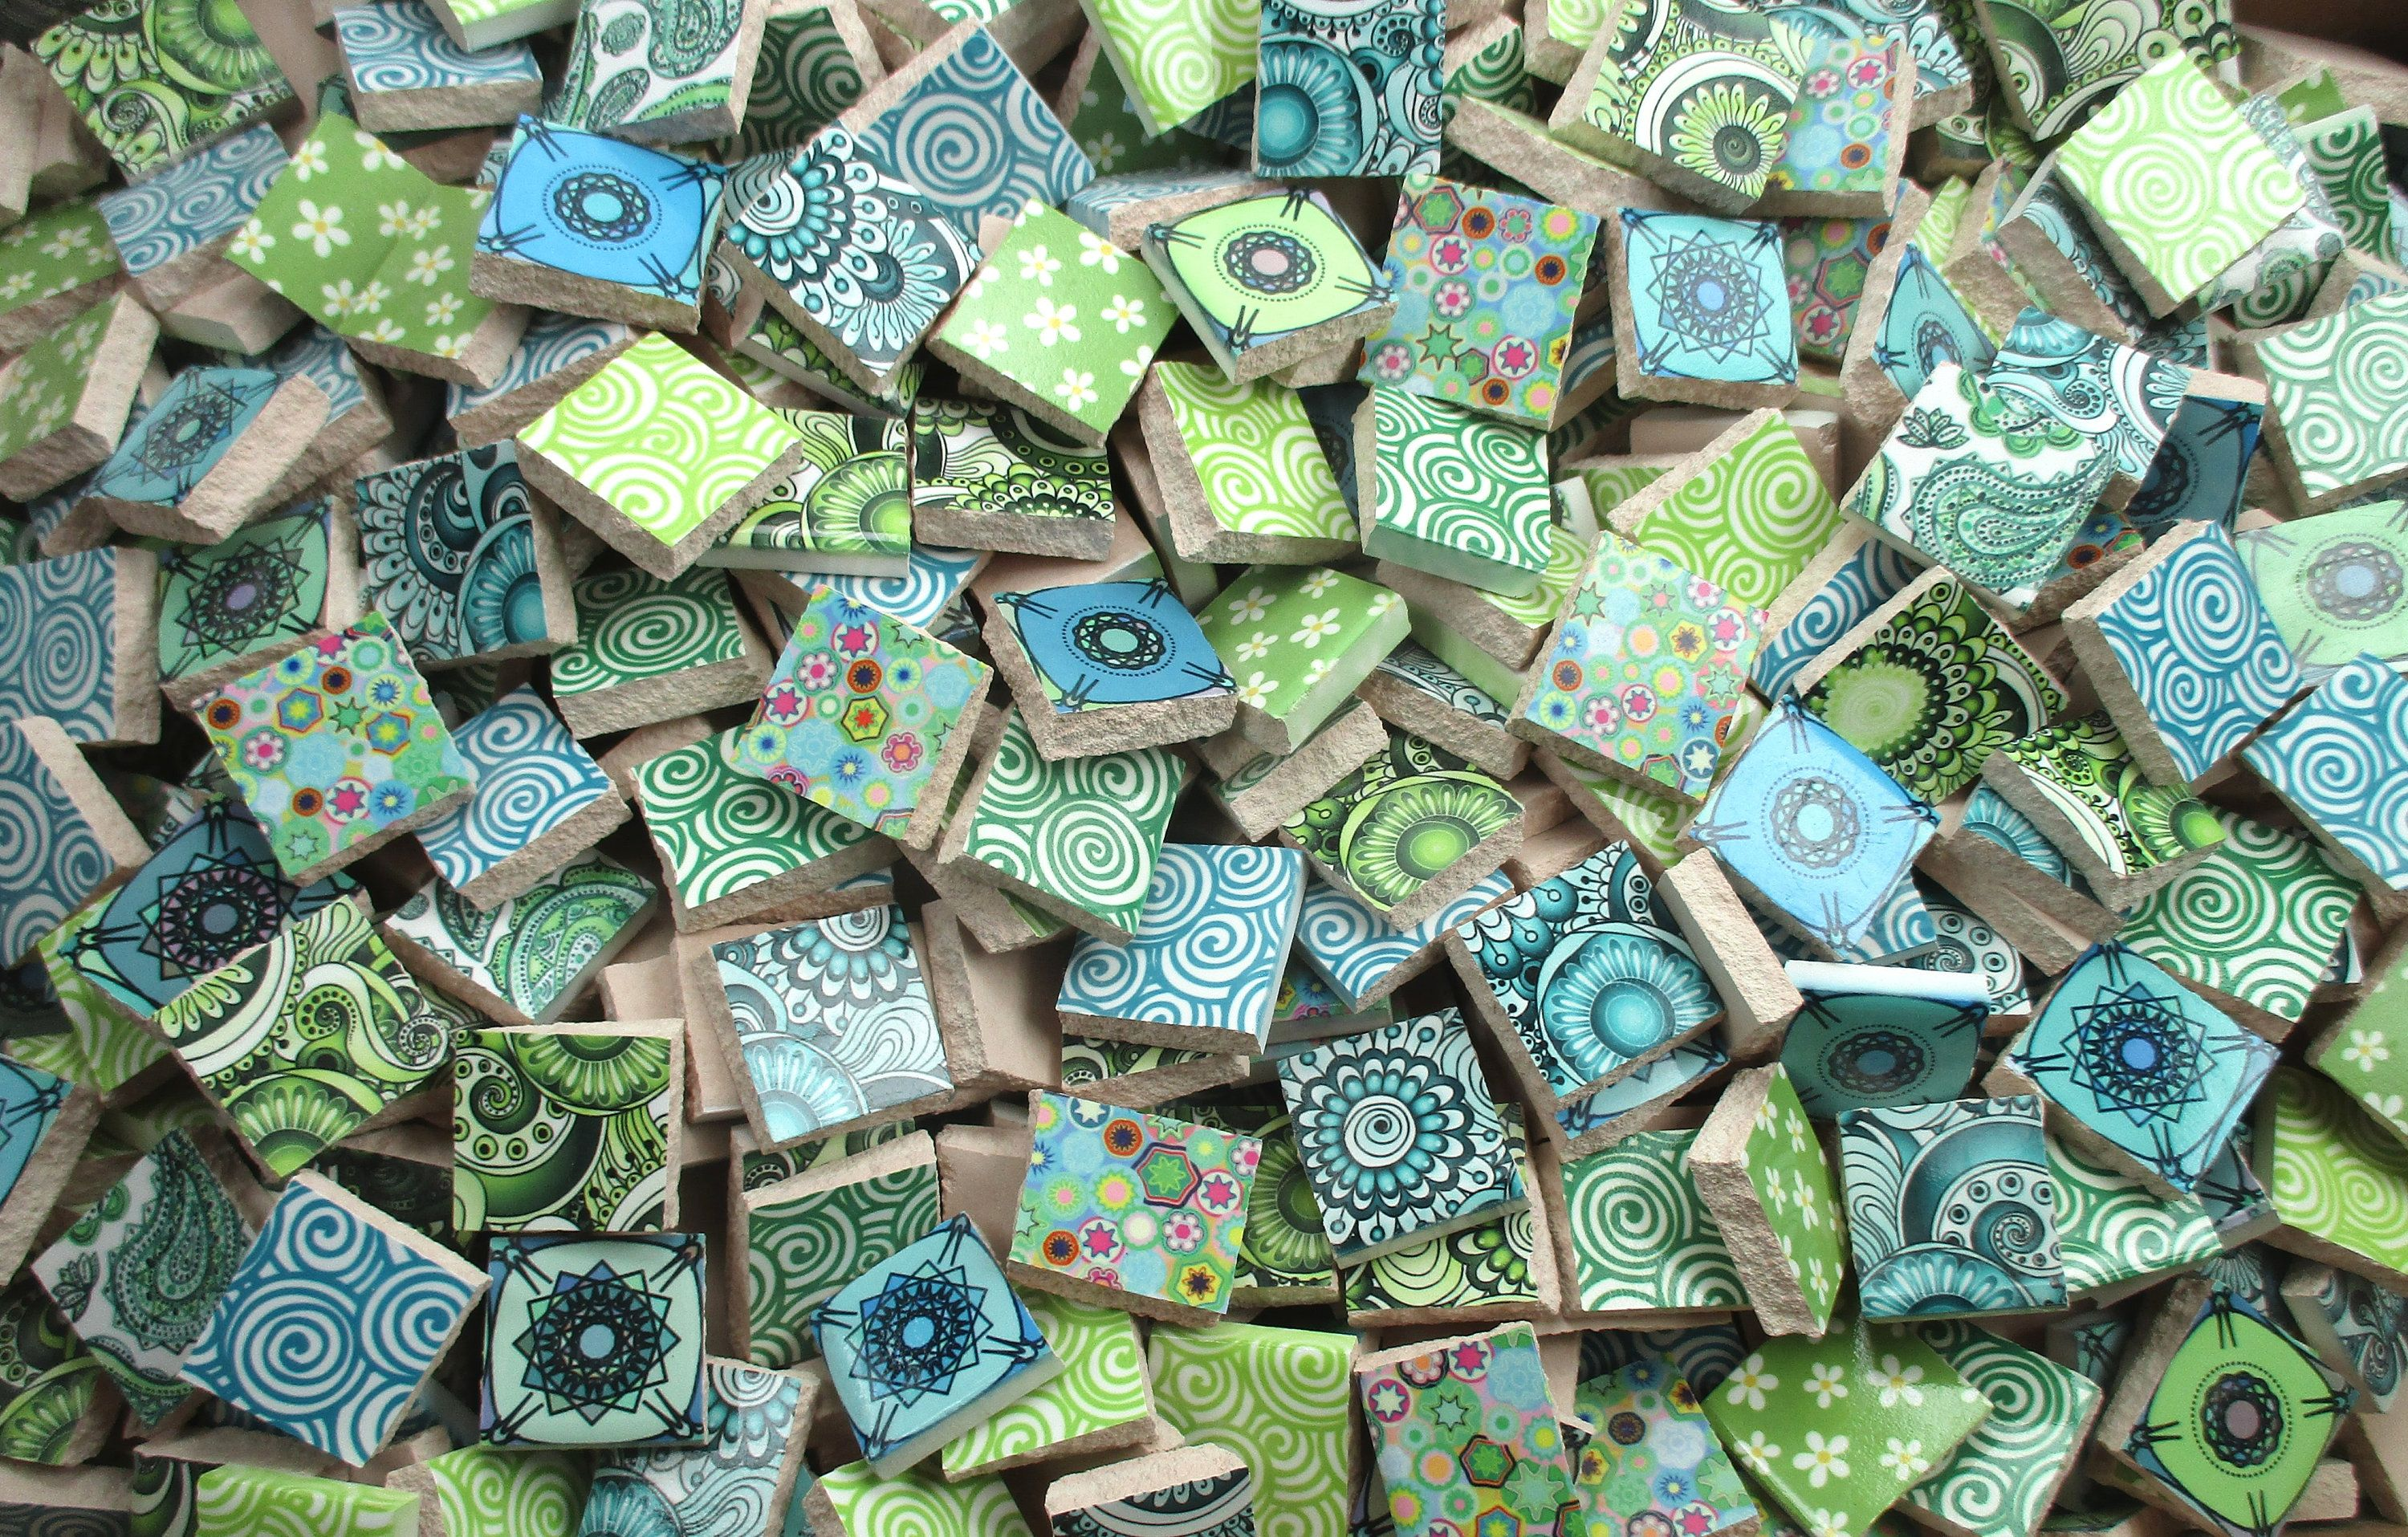 Bulk Mosaic Tiles 2 Pounds Mixed Cool Blue Green Designs Mixed Mosaic Tile Pieces Bulk Mosaic Tiles For Mosaic Art Made Ready To Ship With Images Mosaic Tiles